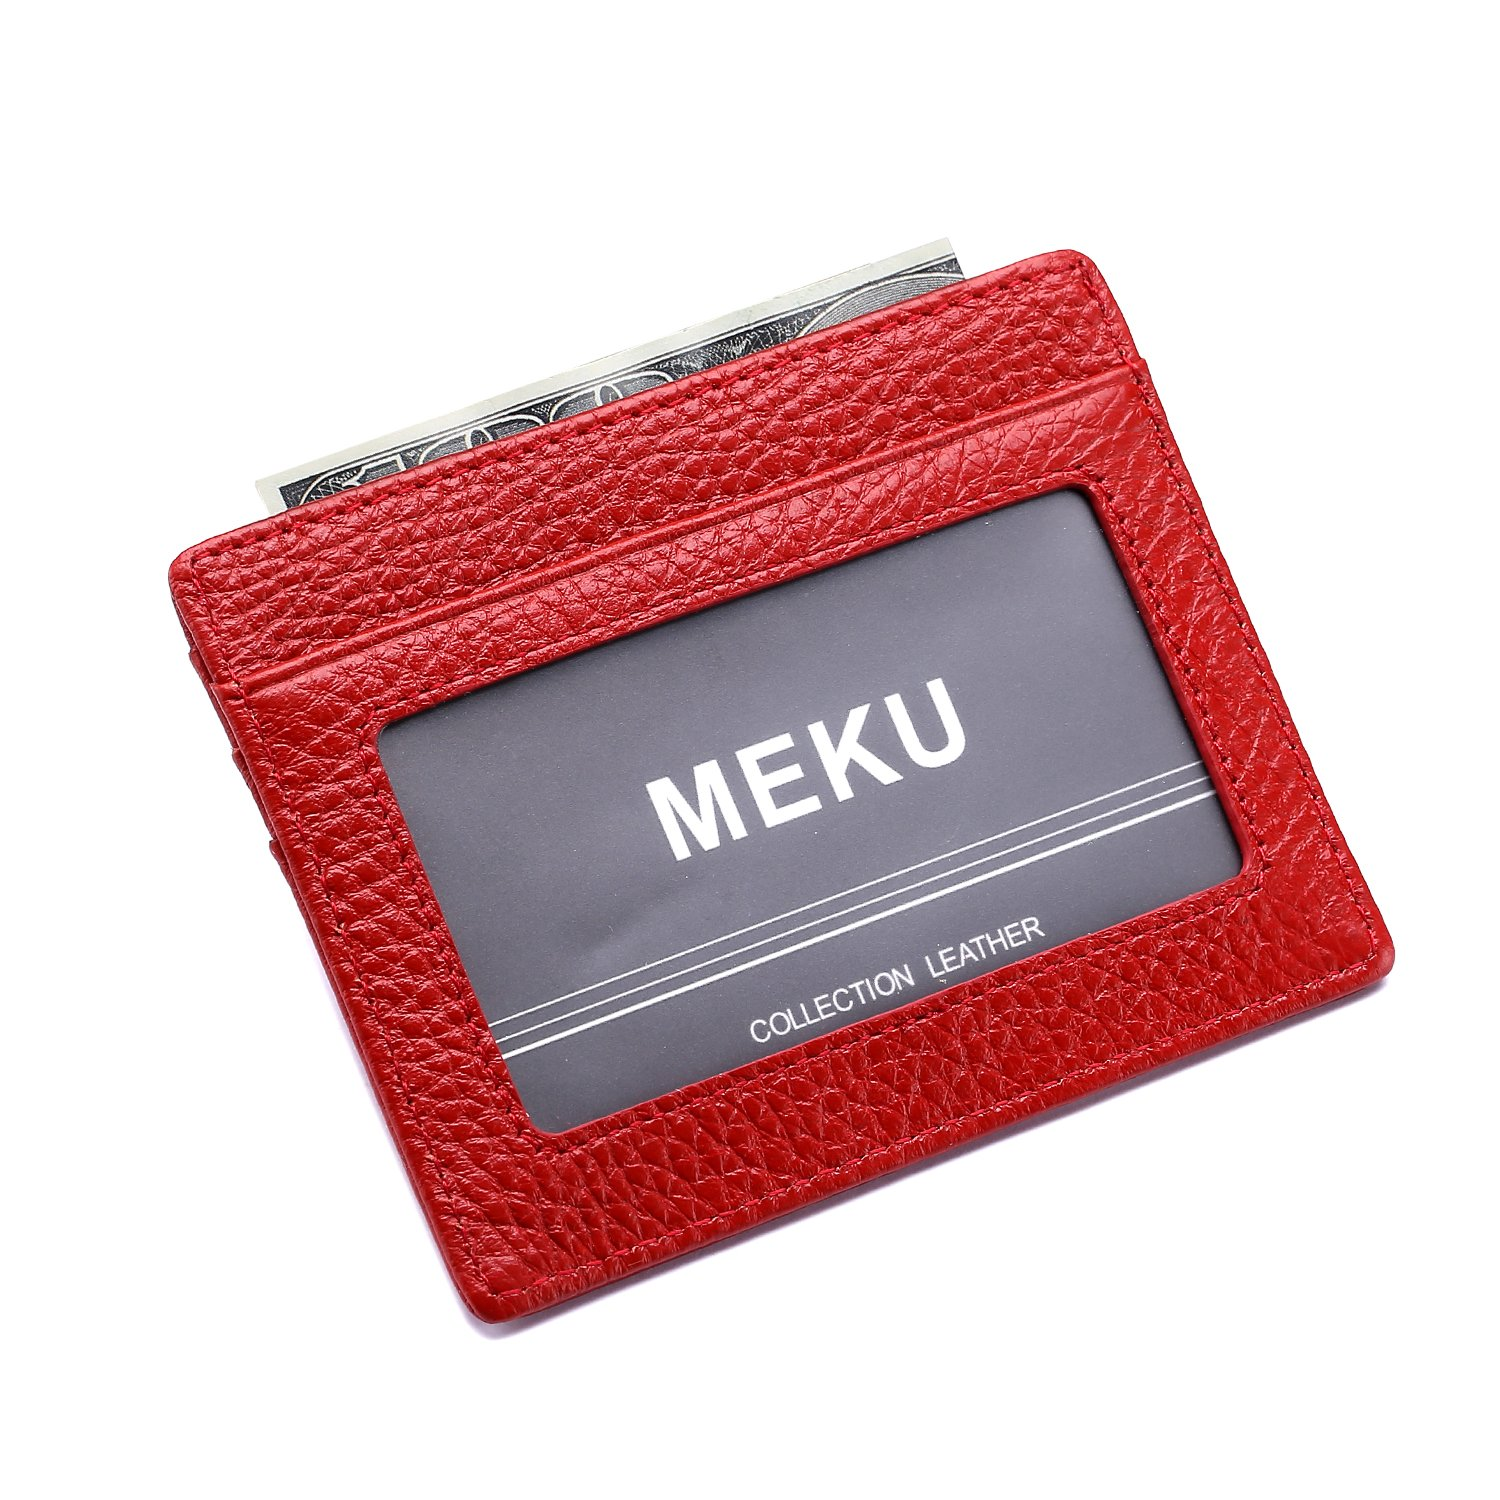 MEKU Slim Leather Wallet Credit Card Case Sleeve Card Holder With ID Window MK-LCC005-BAK